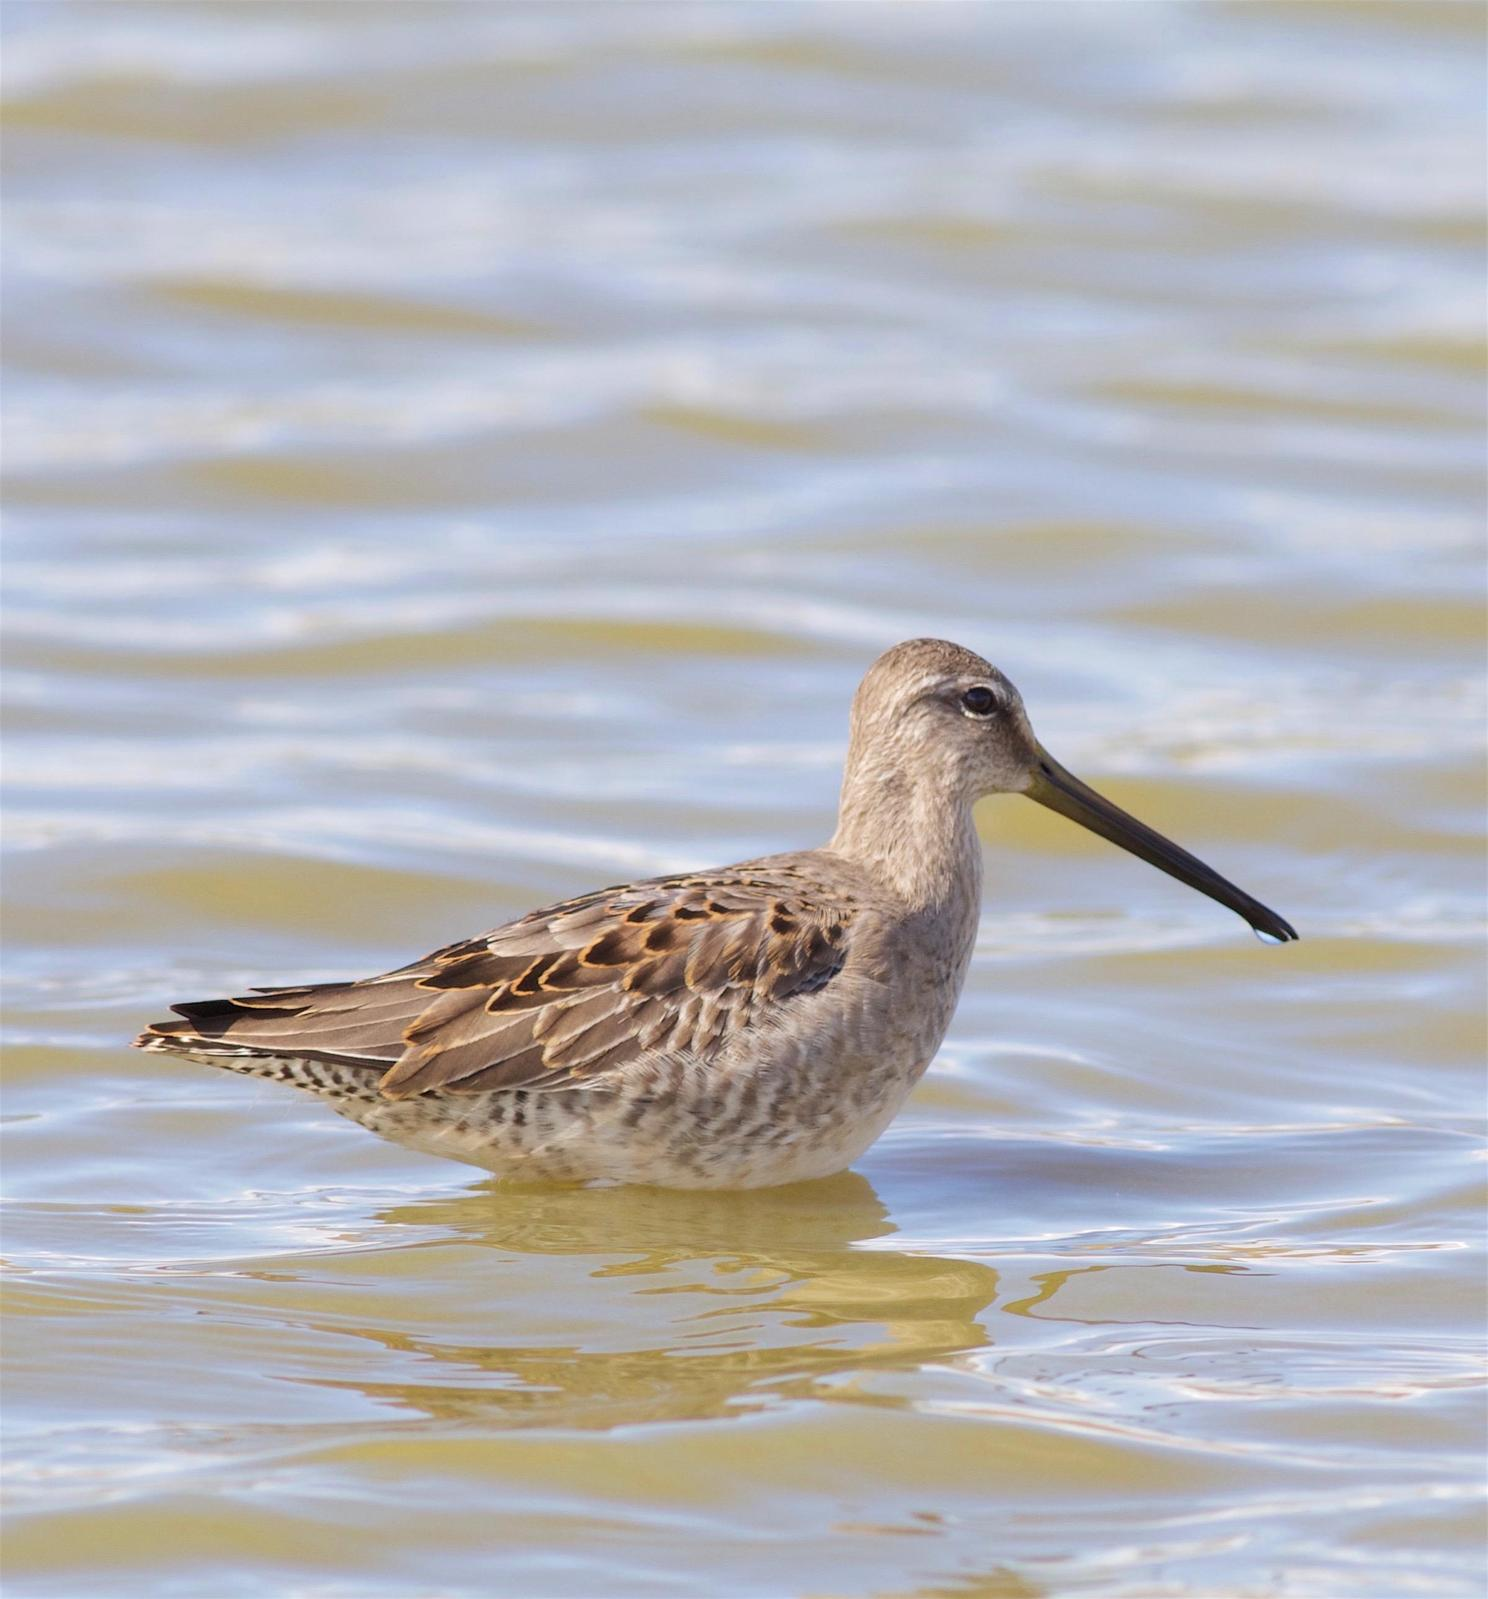 Long-billed Dowitcher Photo by Kathryn Keith